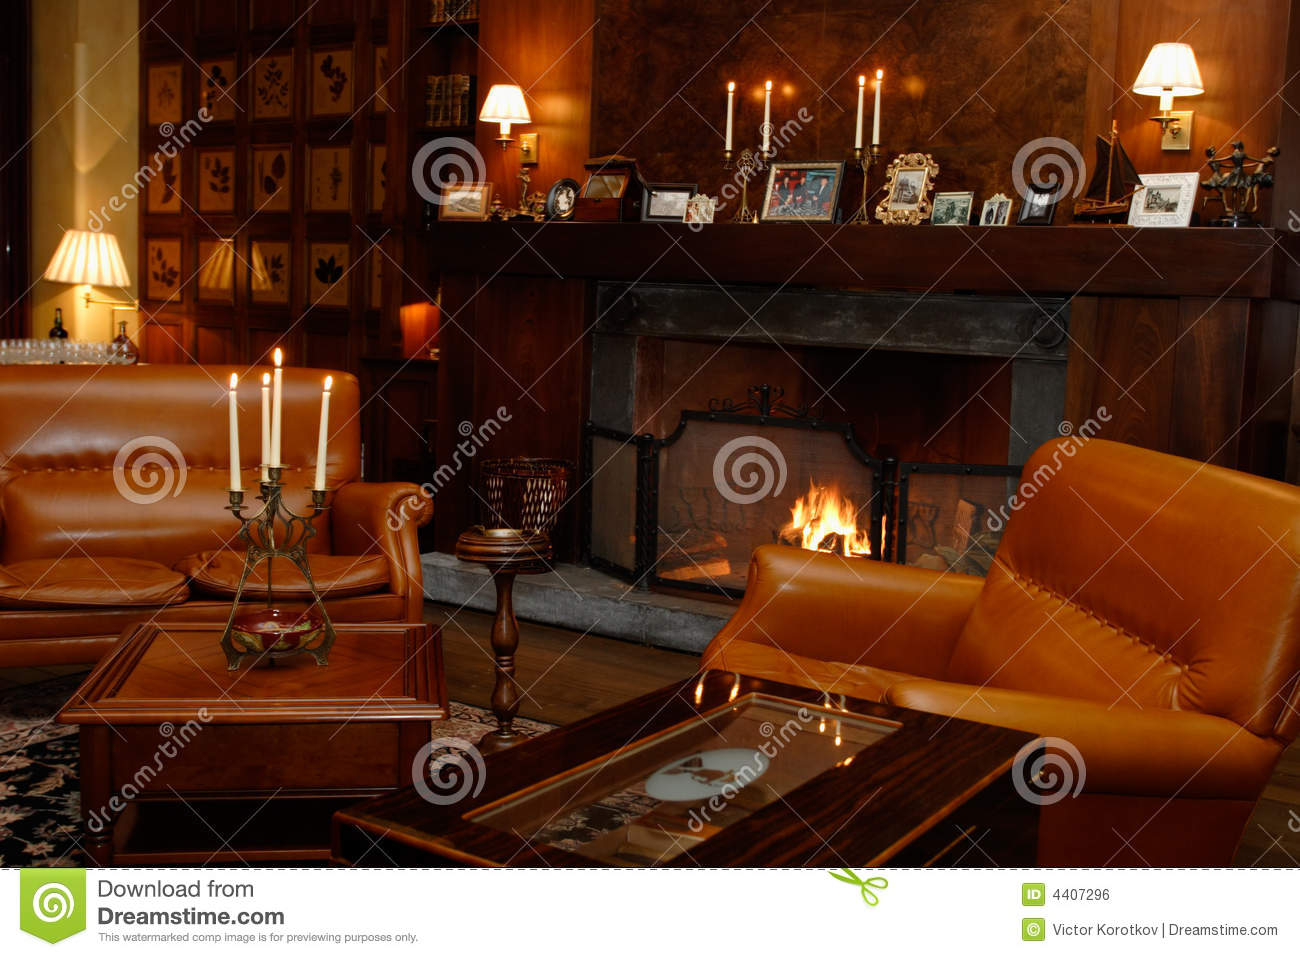 designer sofa furniture online uk den, fireplace, leather chairs stock photo - image: 4407296